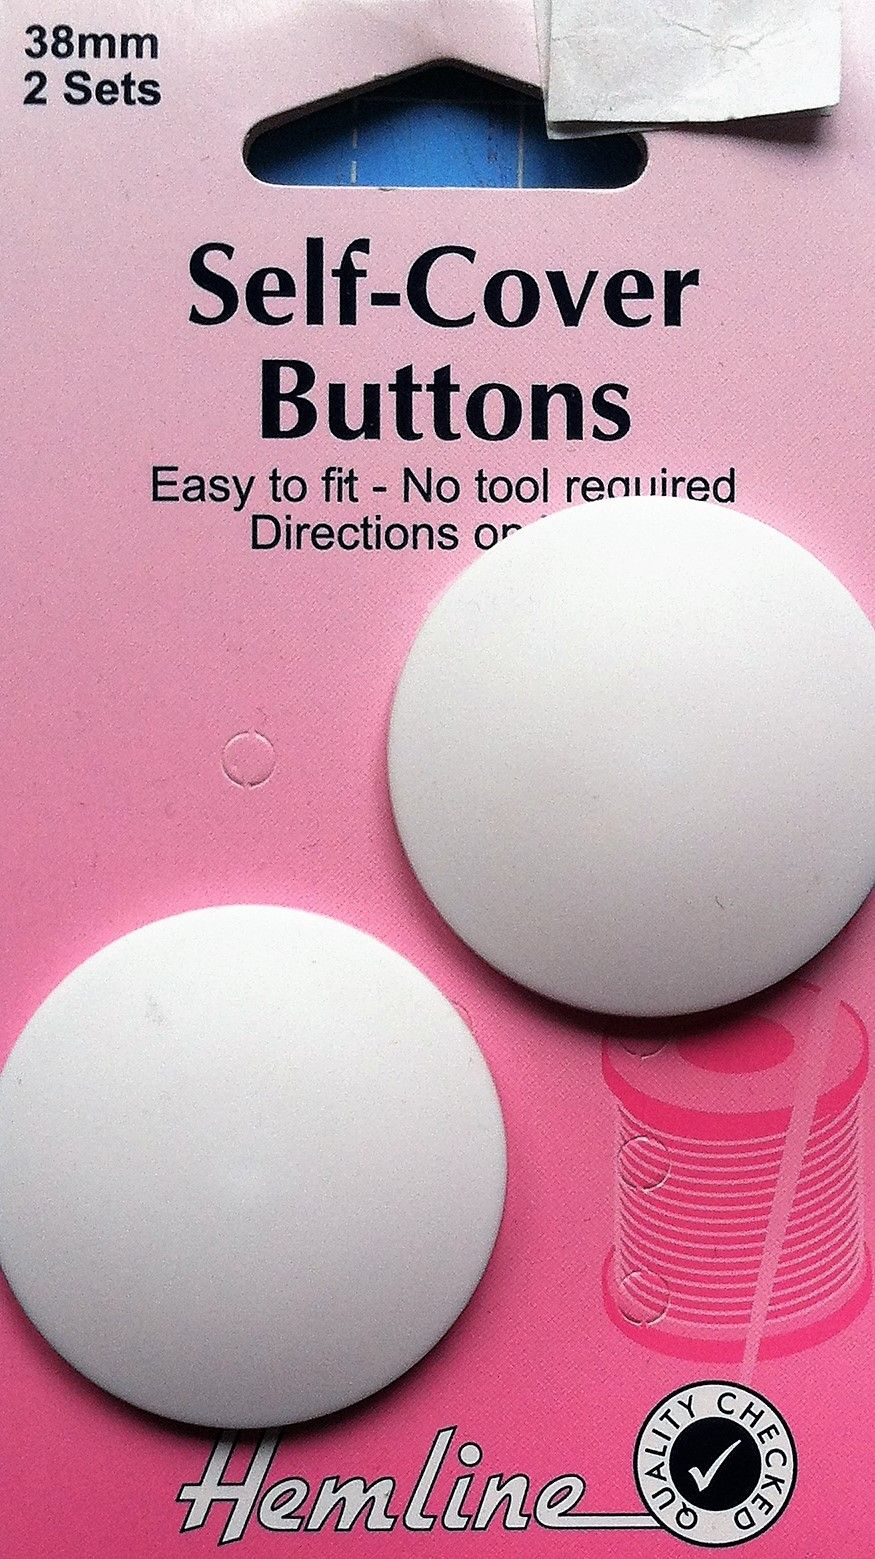 Self-cover buttons by Hemline 29mm 4Xsets